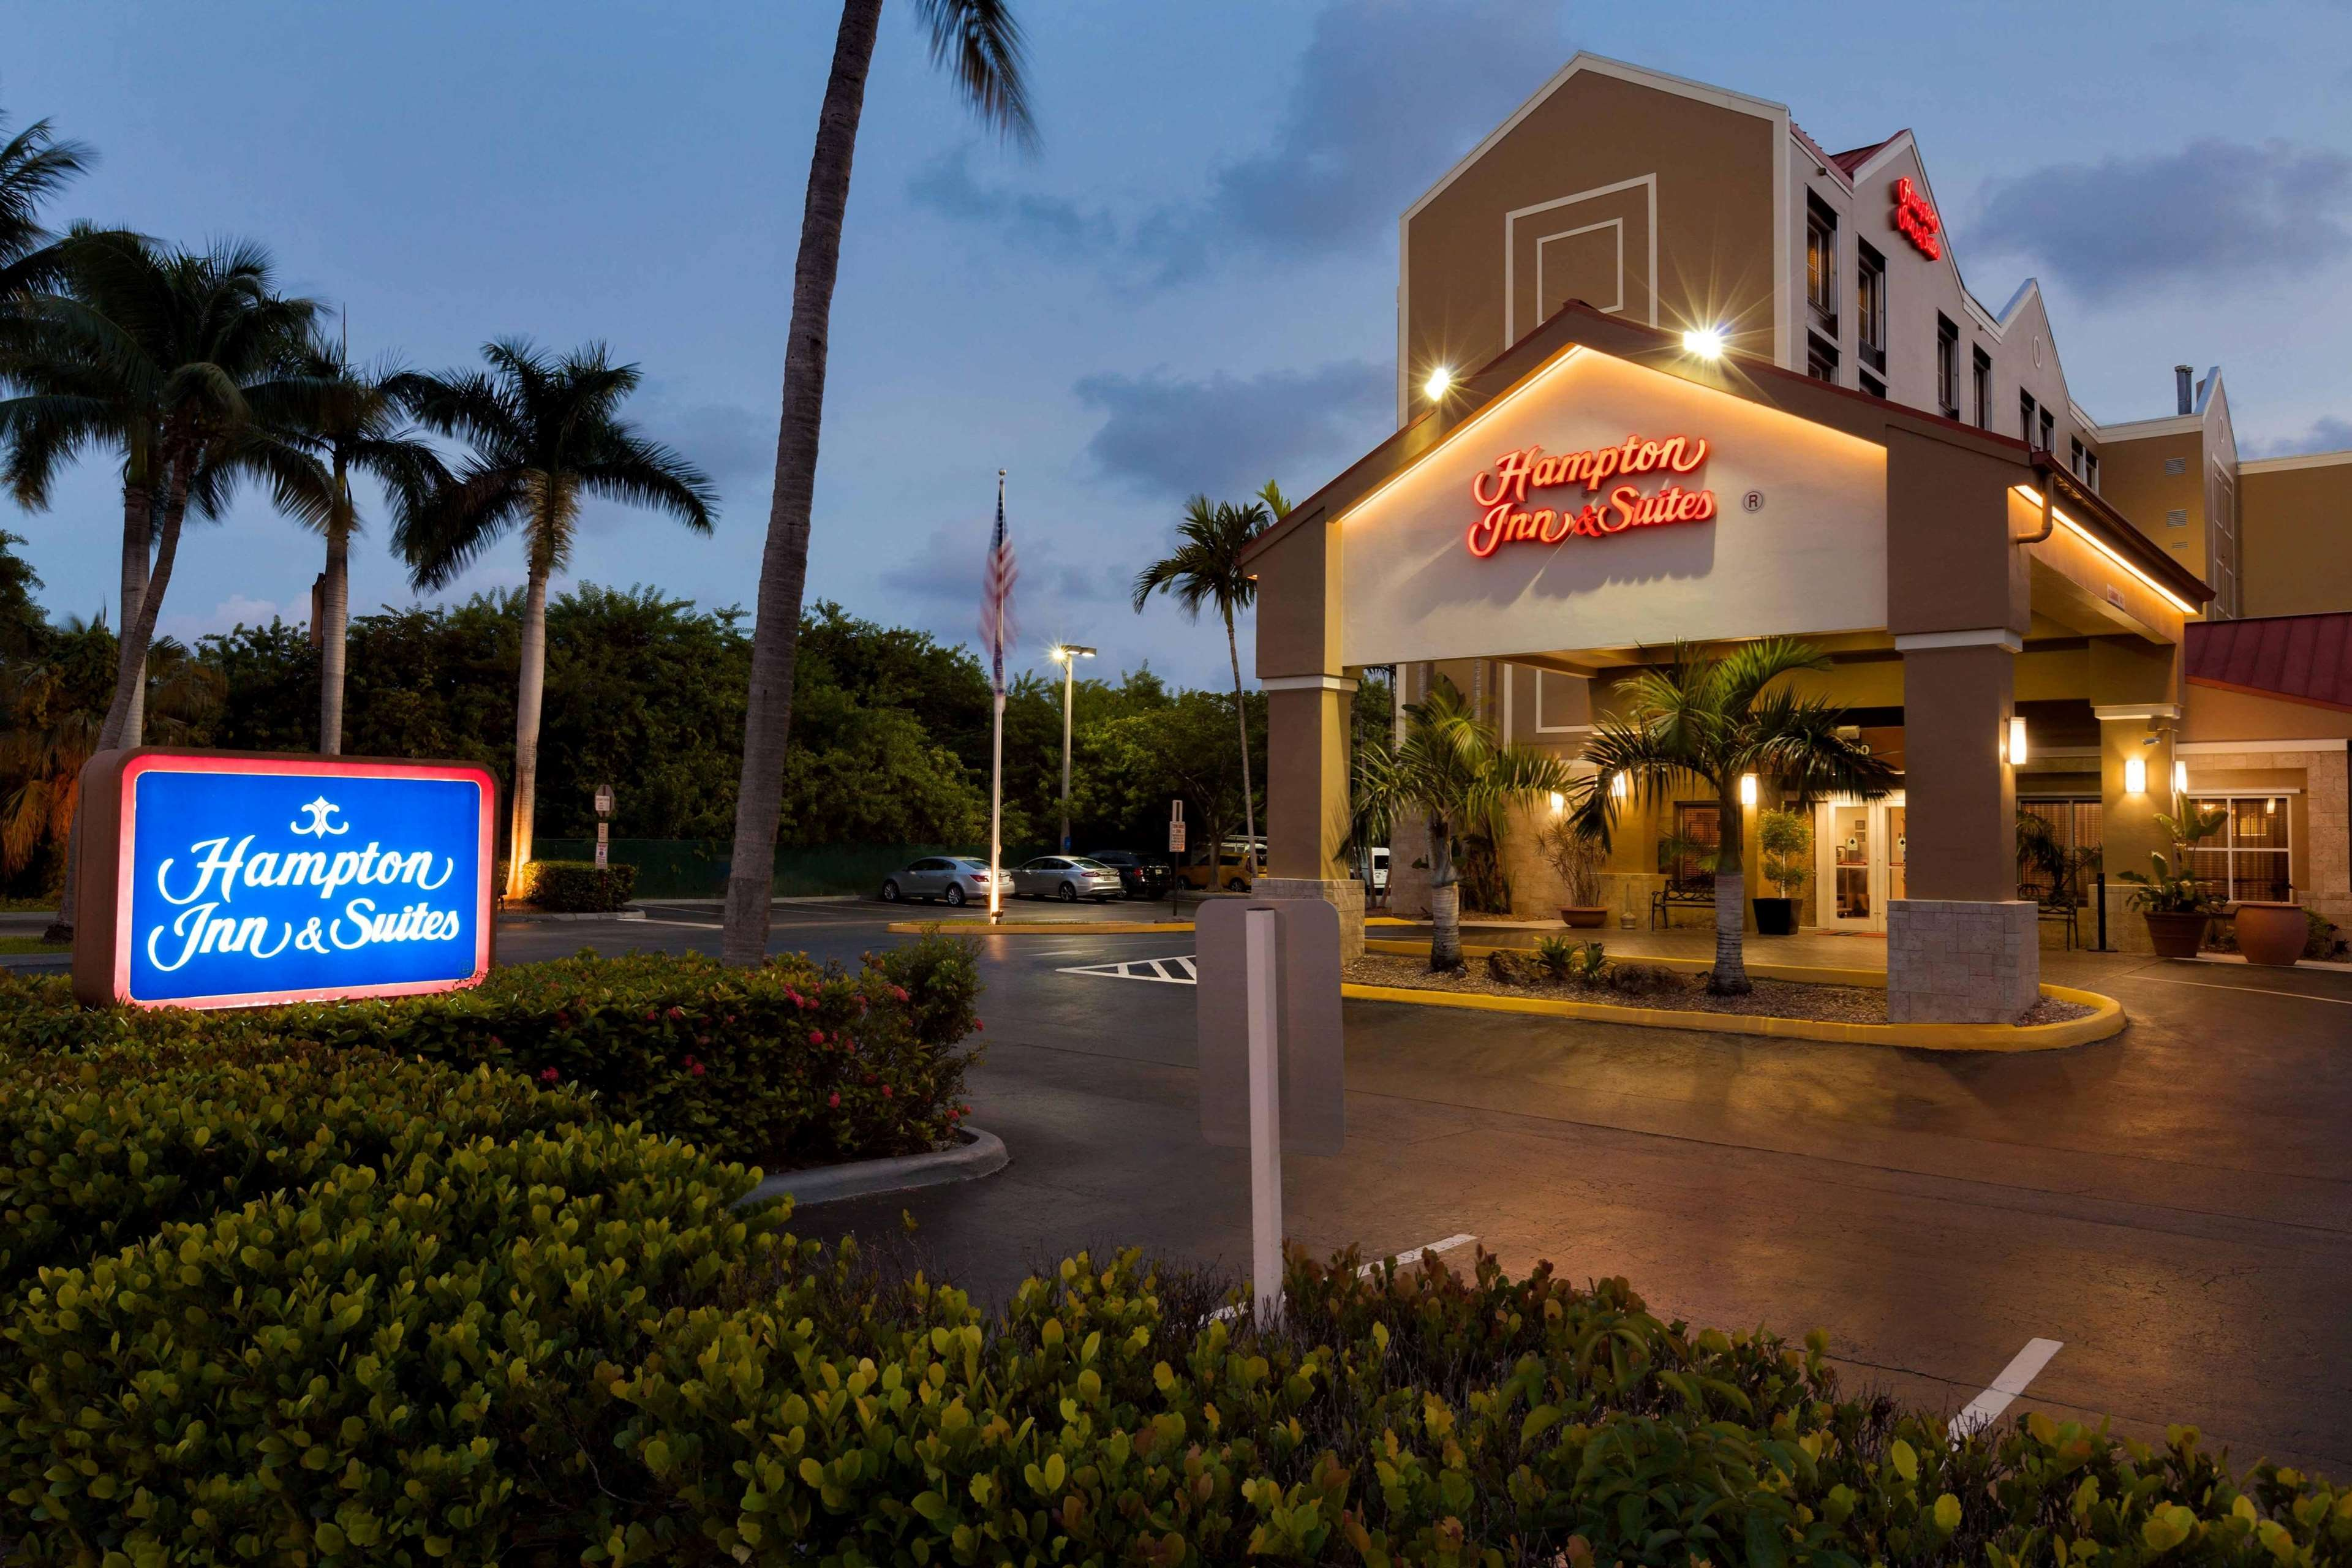 Hotels Motels Fort Lauderdale Airport